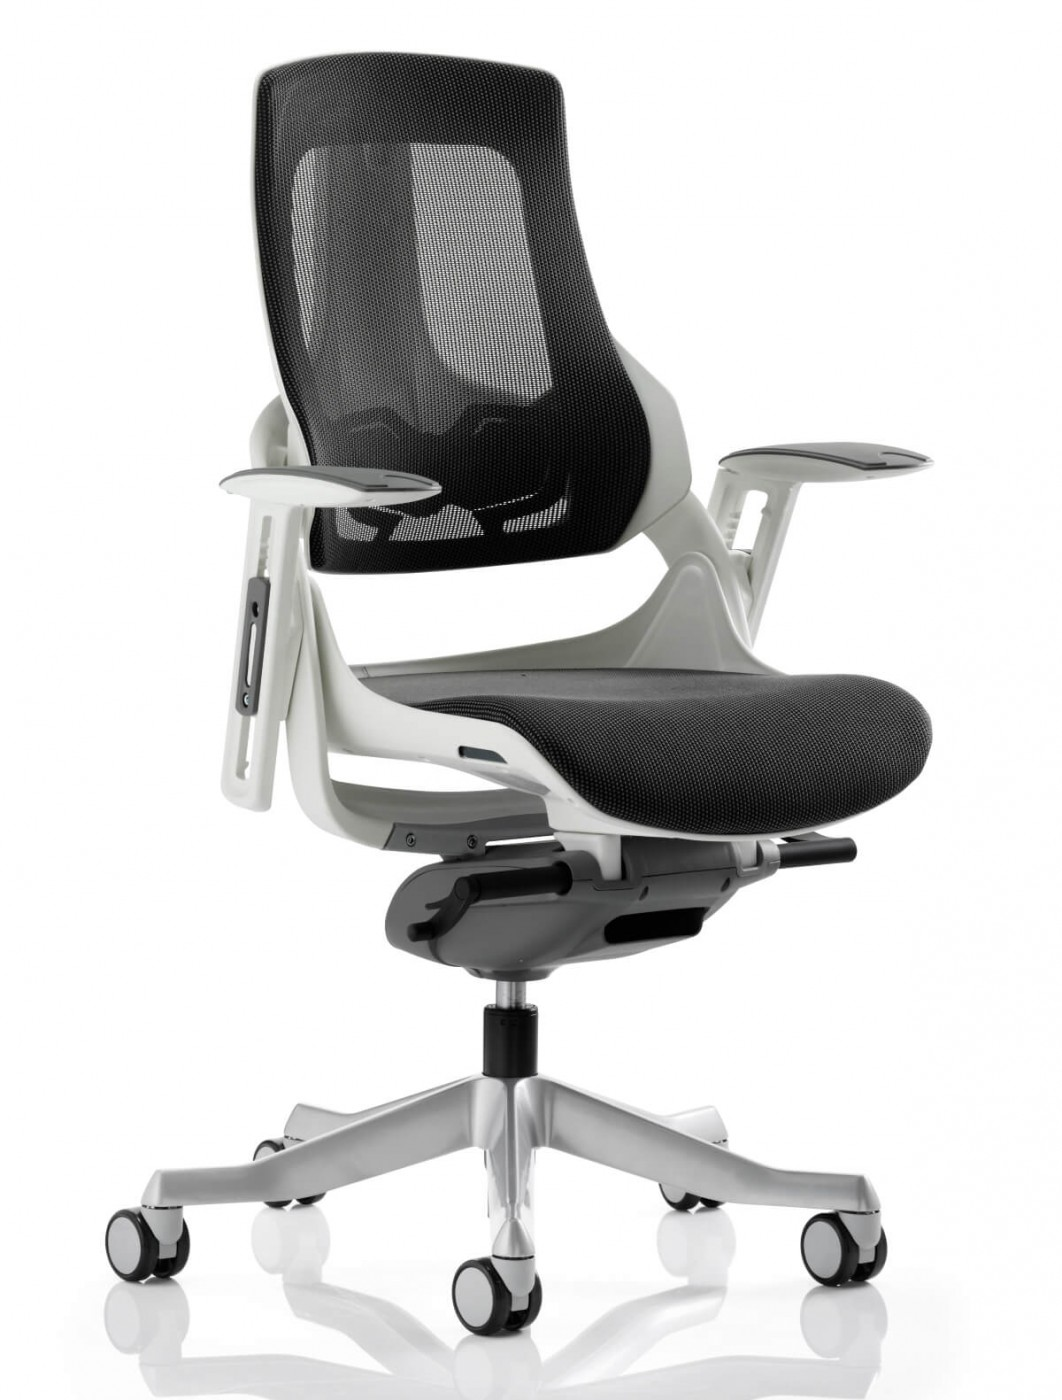 Office Chairs - Zure Charcoal Executive Mesh Office Chair EX000111